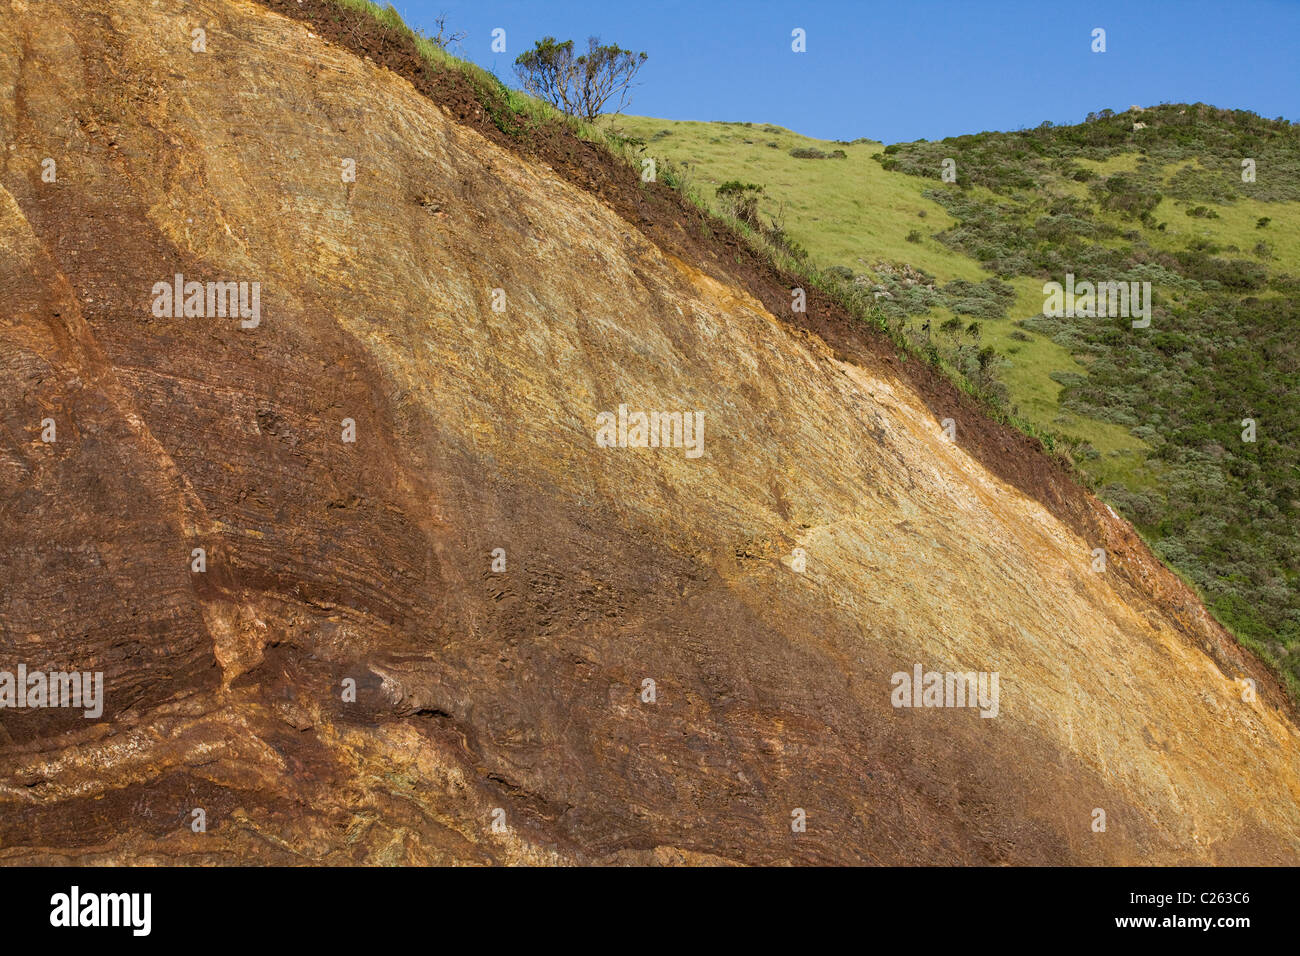 A cross section view of hillside, showing layers of differing soil and rock - California USA - Stock Image